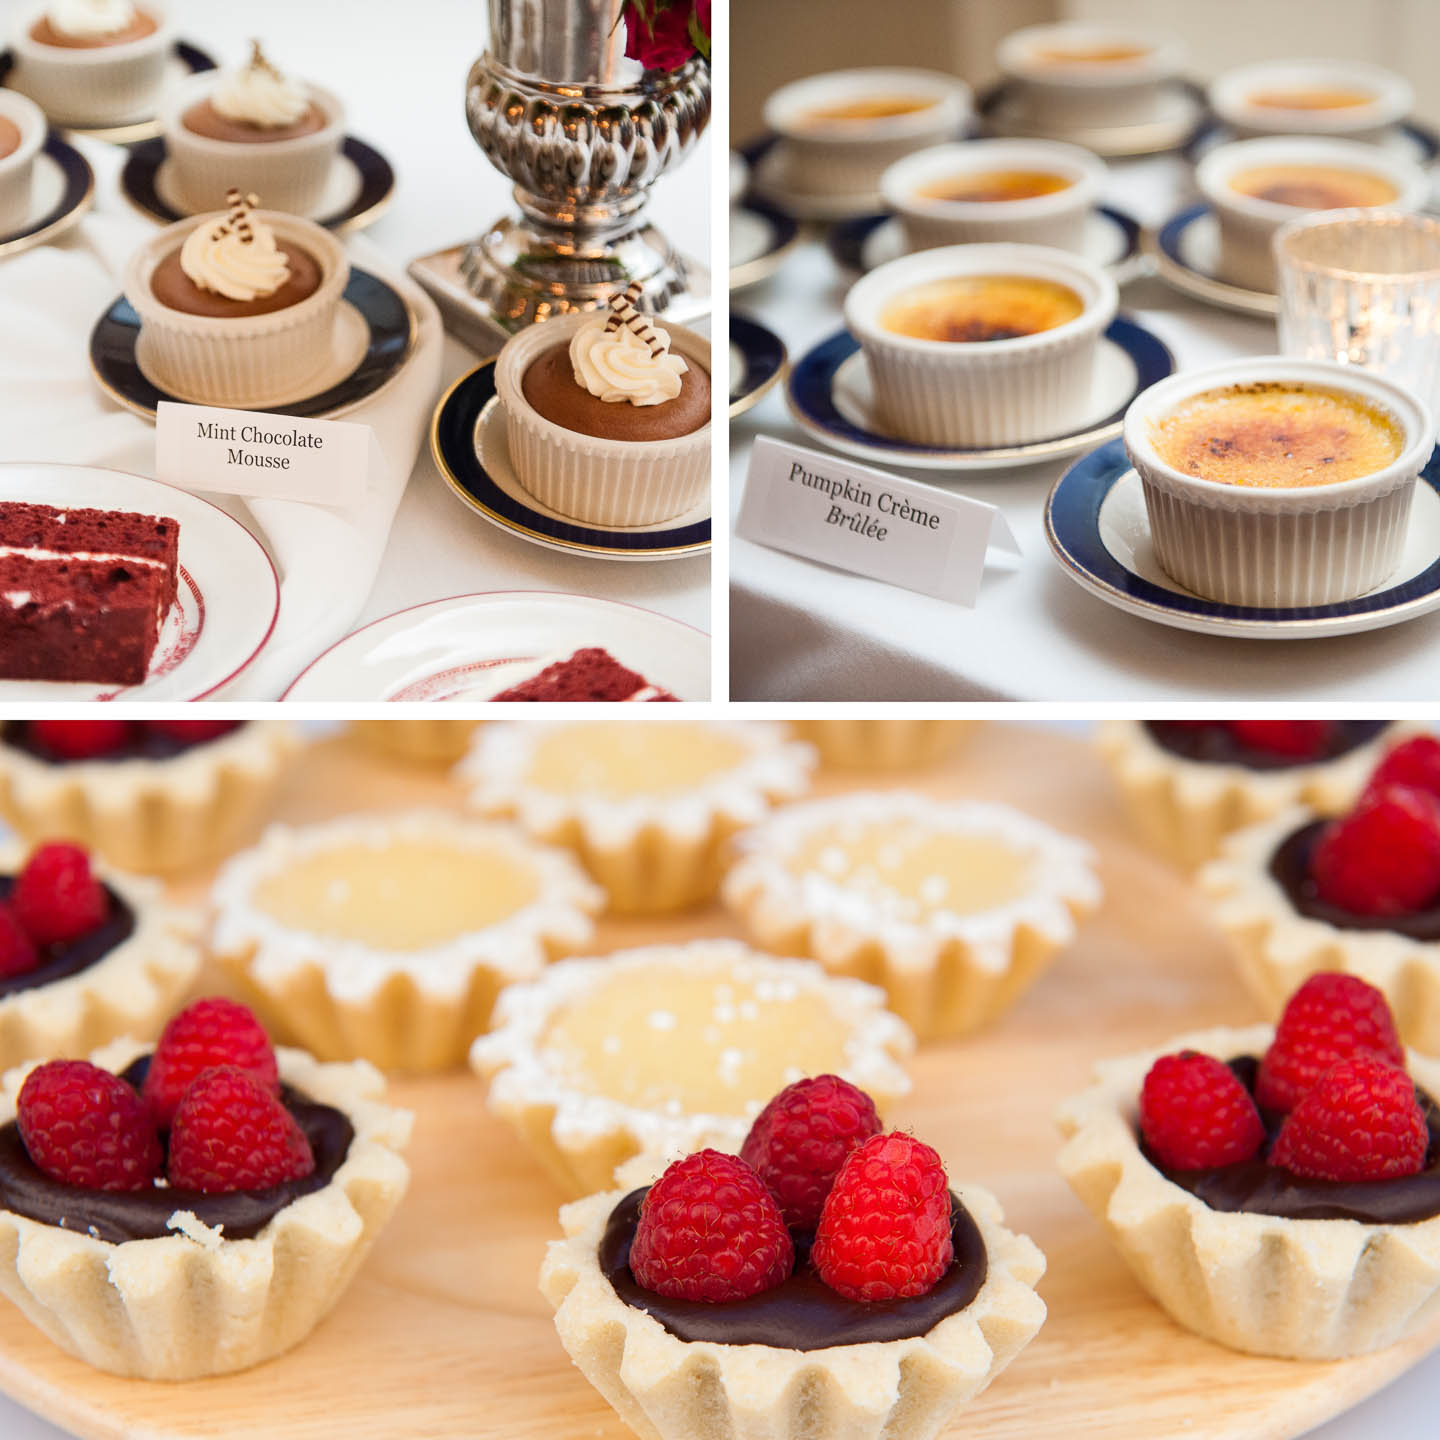 Wedding dessert options including mint stick chocolate moose, pumpkin creme brulee and an assortment of tarts